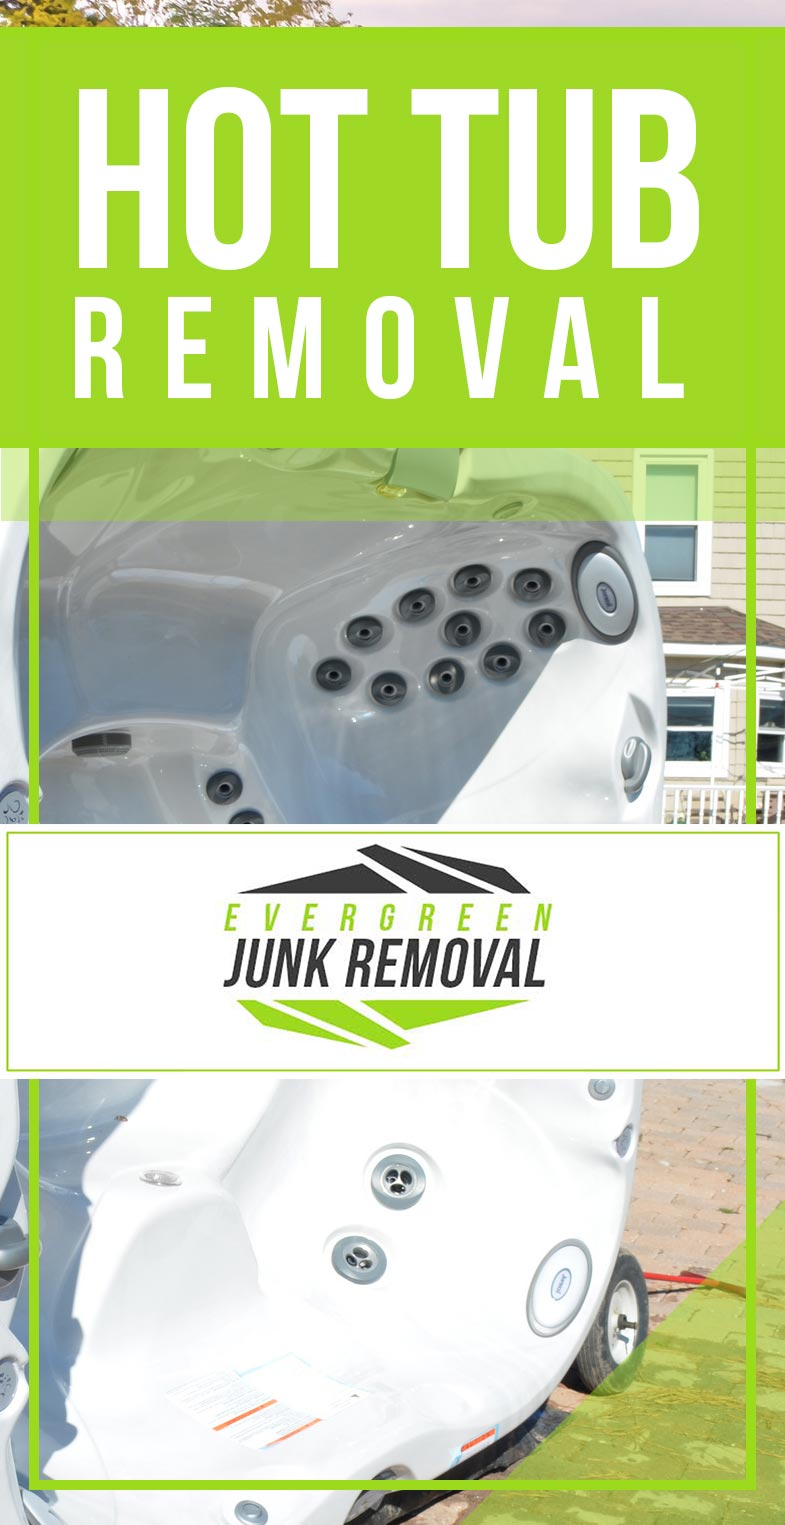 DeLand-Hot-Tub-Removal